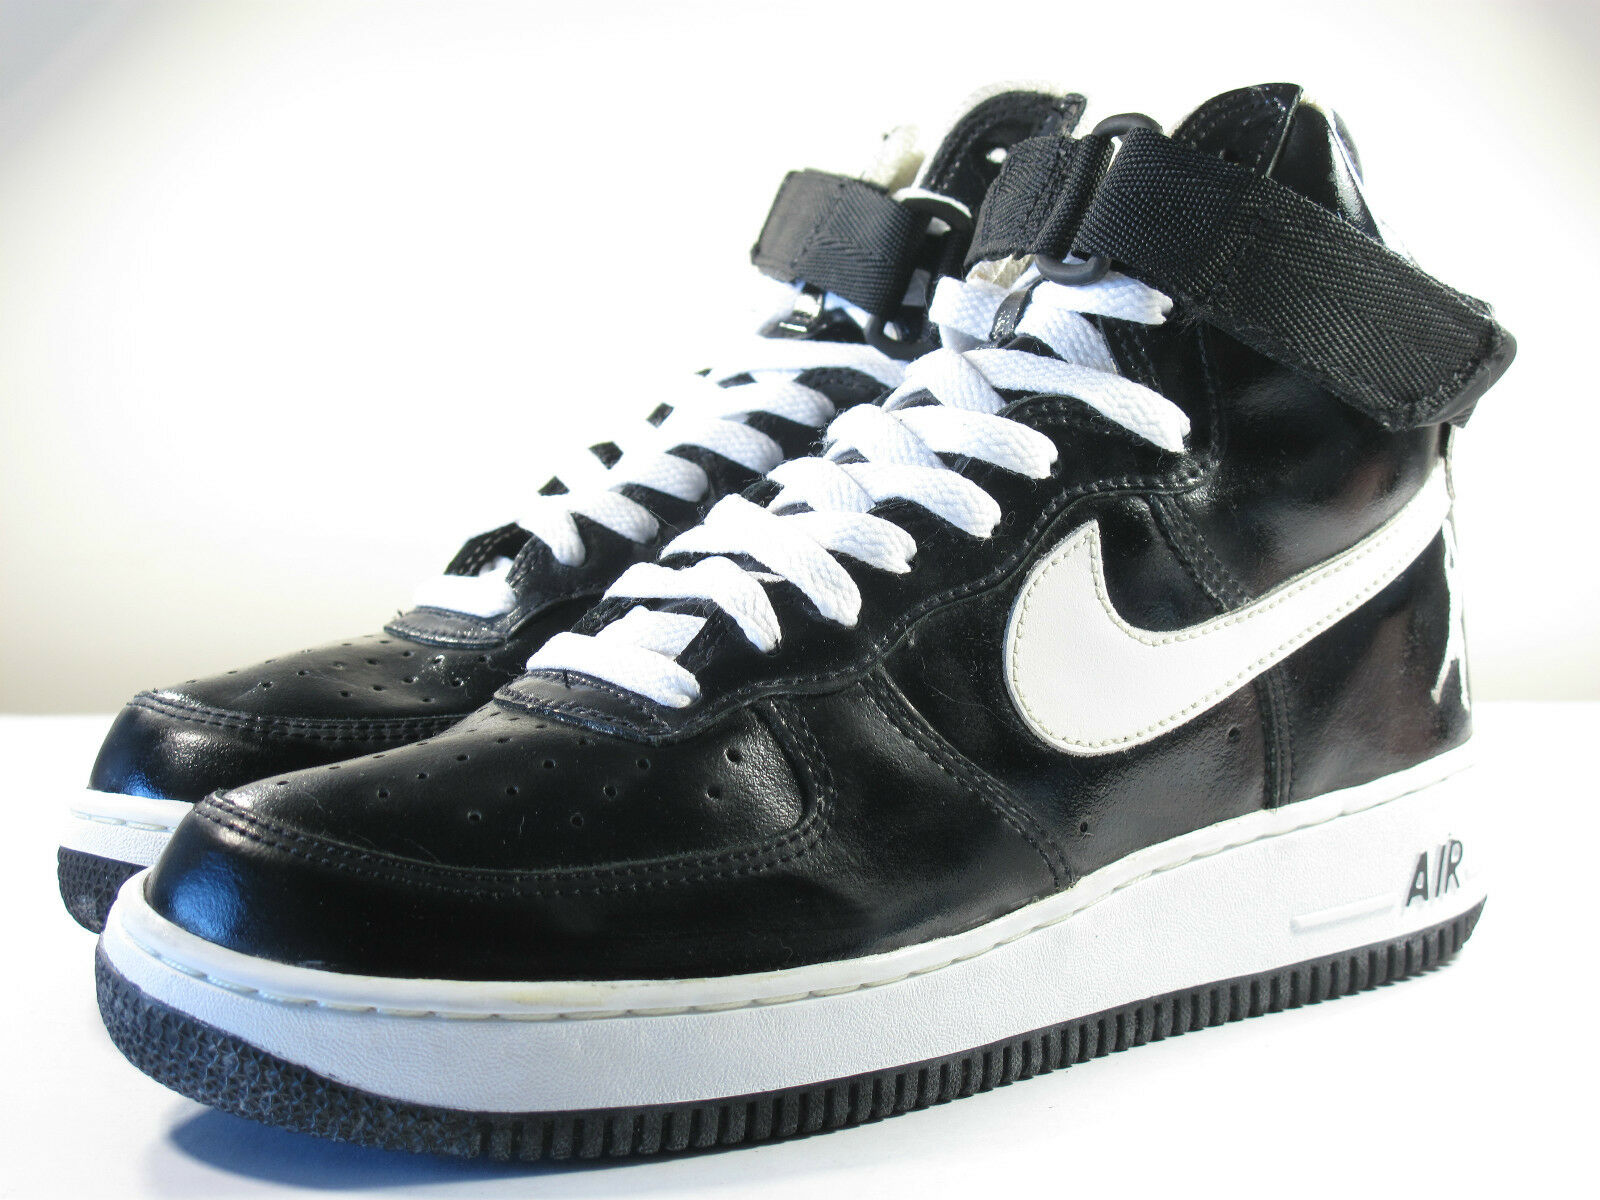 Il sergente nike 2001 air force 1 sheed - 9 hyperfuse suprema 180 denim italia lux atmos